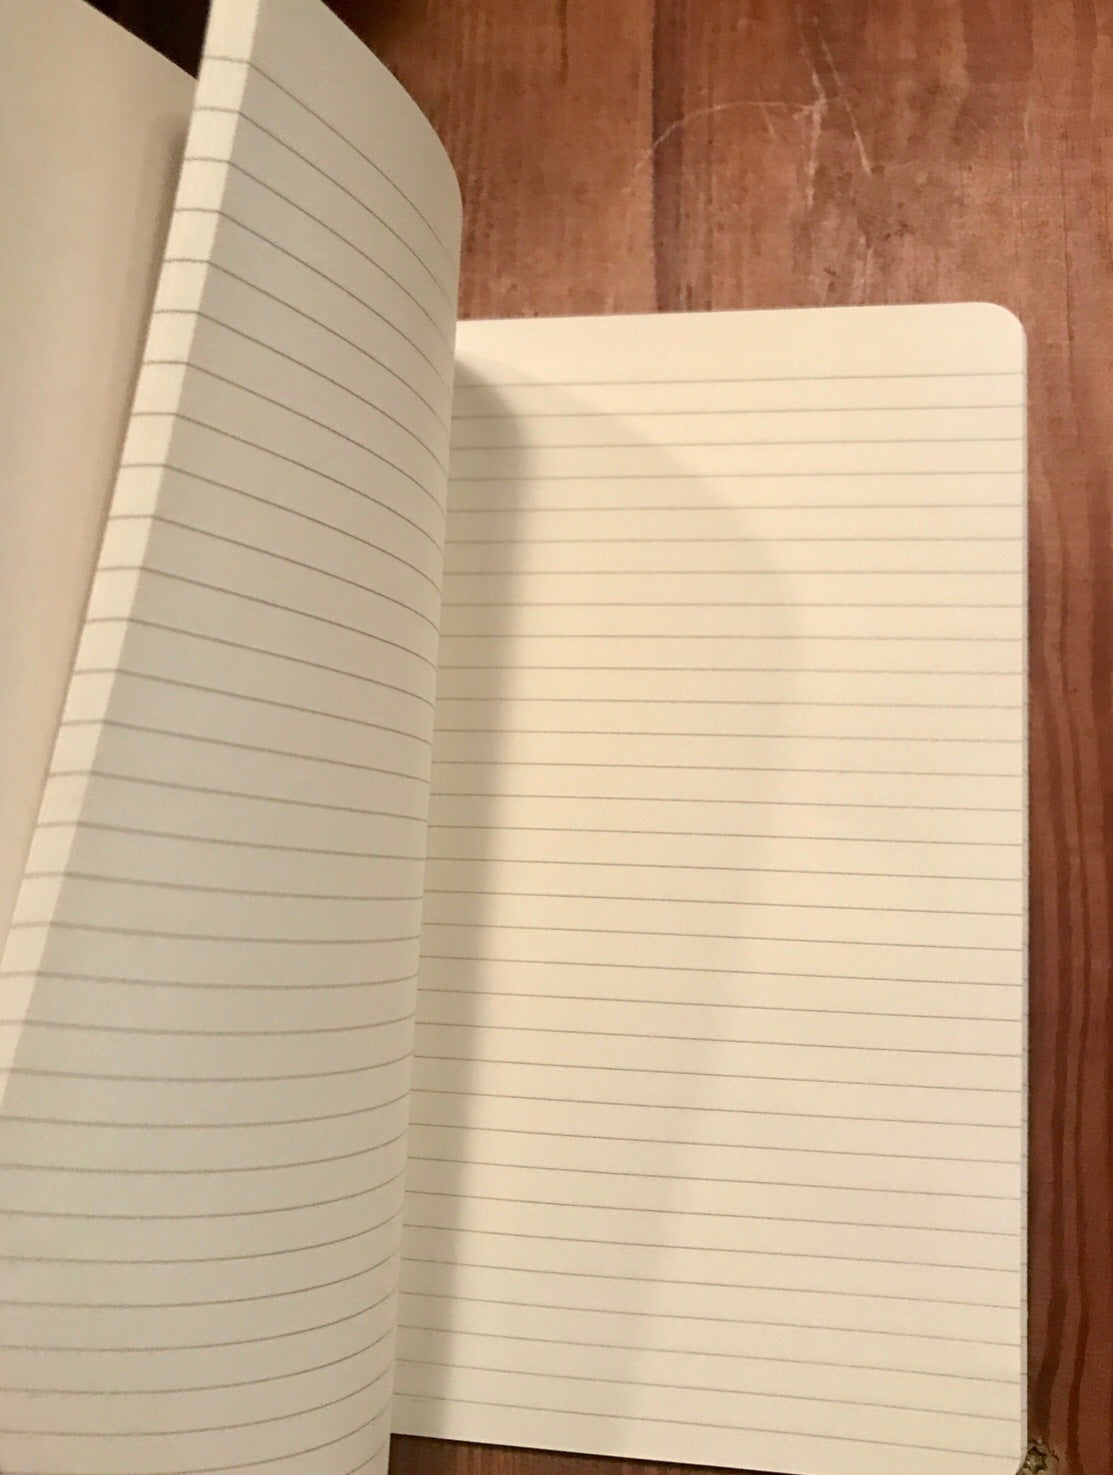 Go Your Own Way Notebook